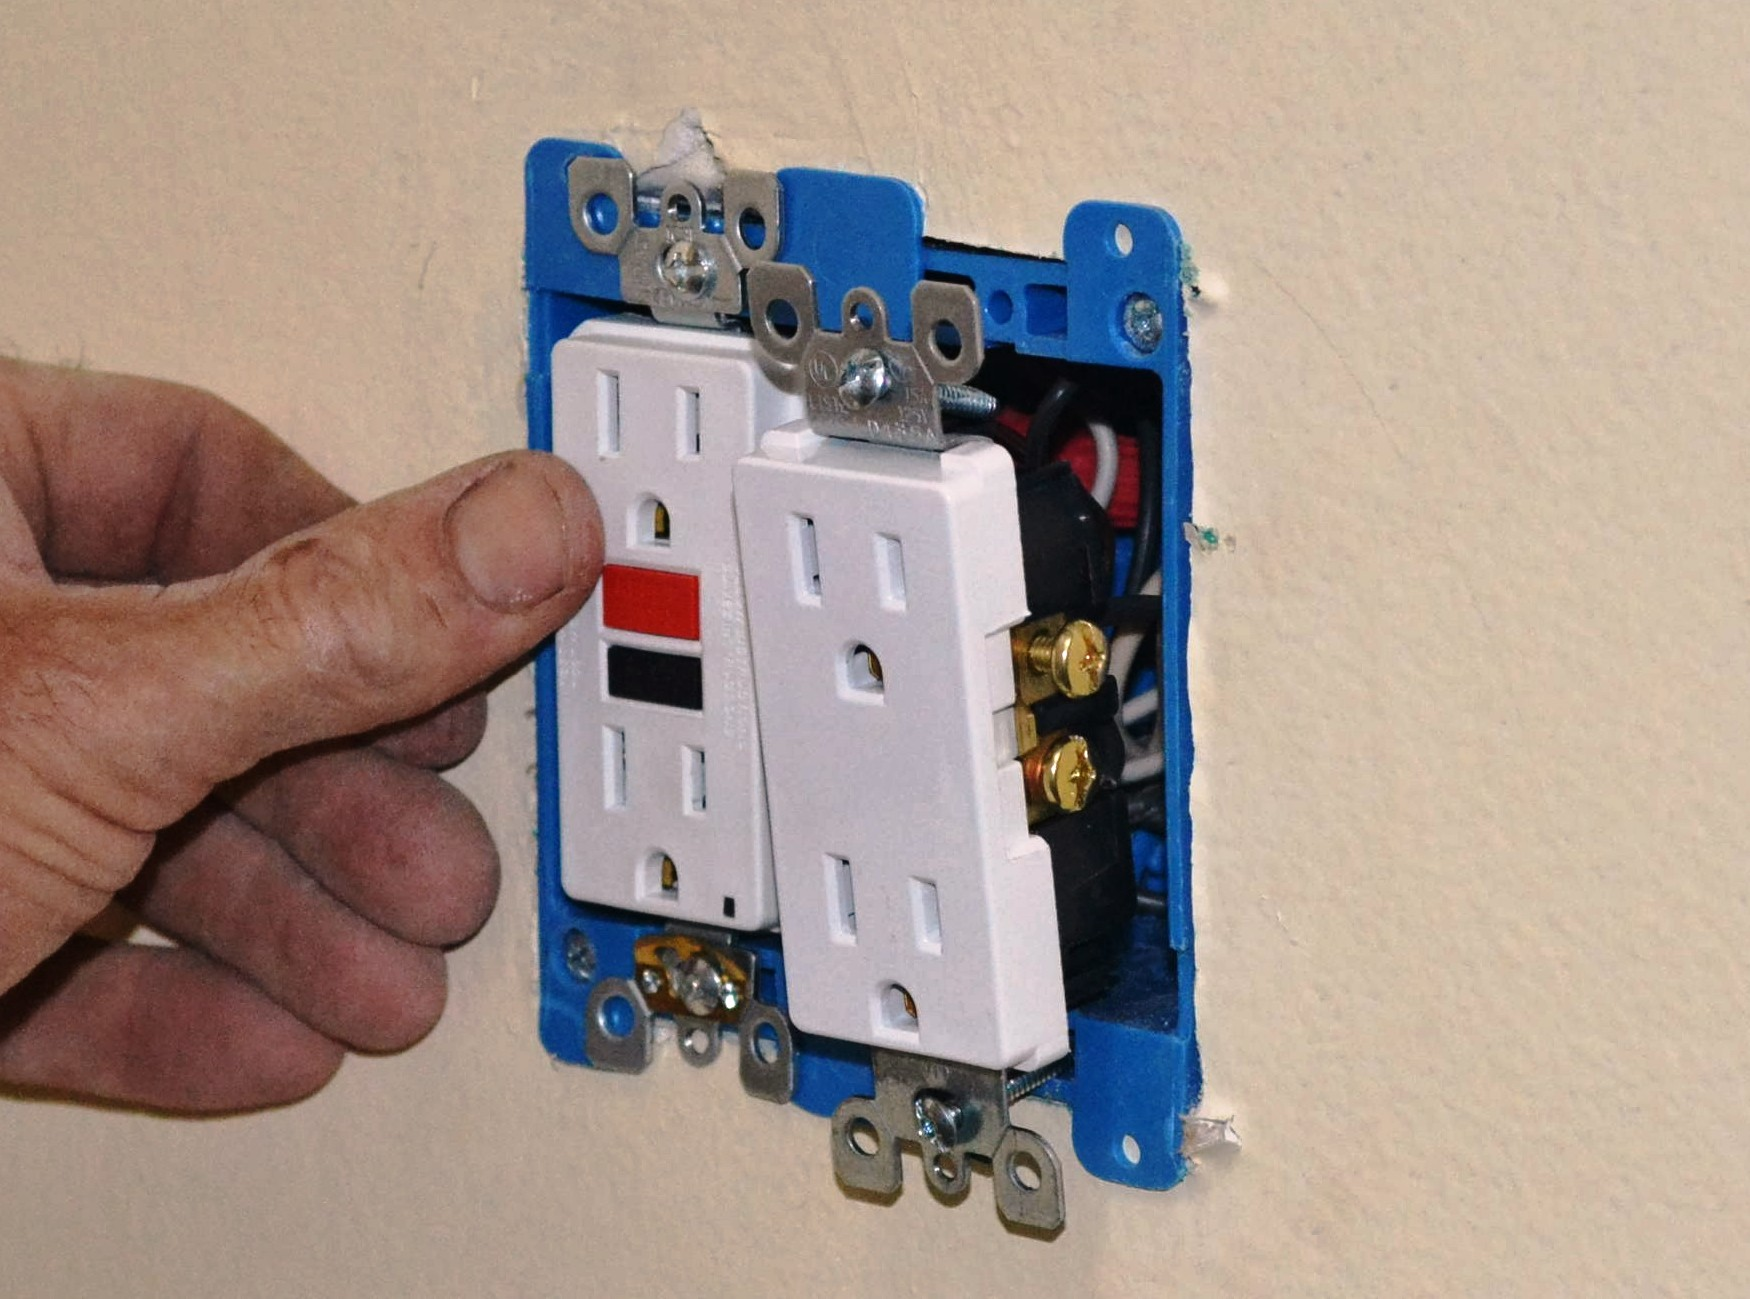 Wiring An Outlet With 4 Wires